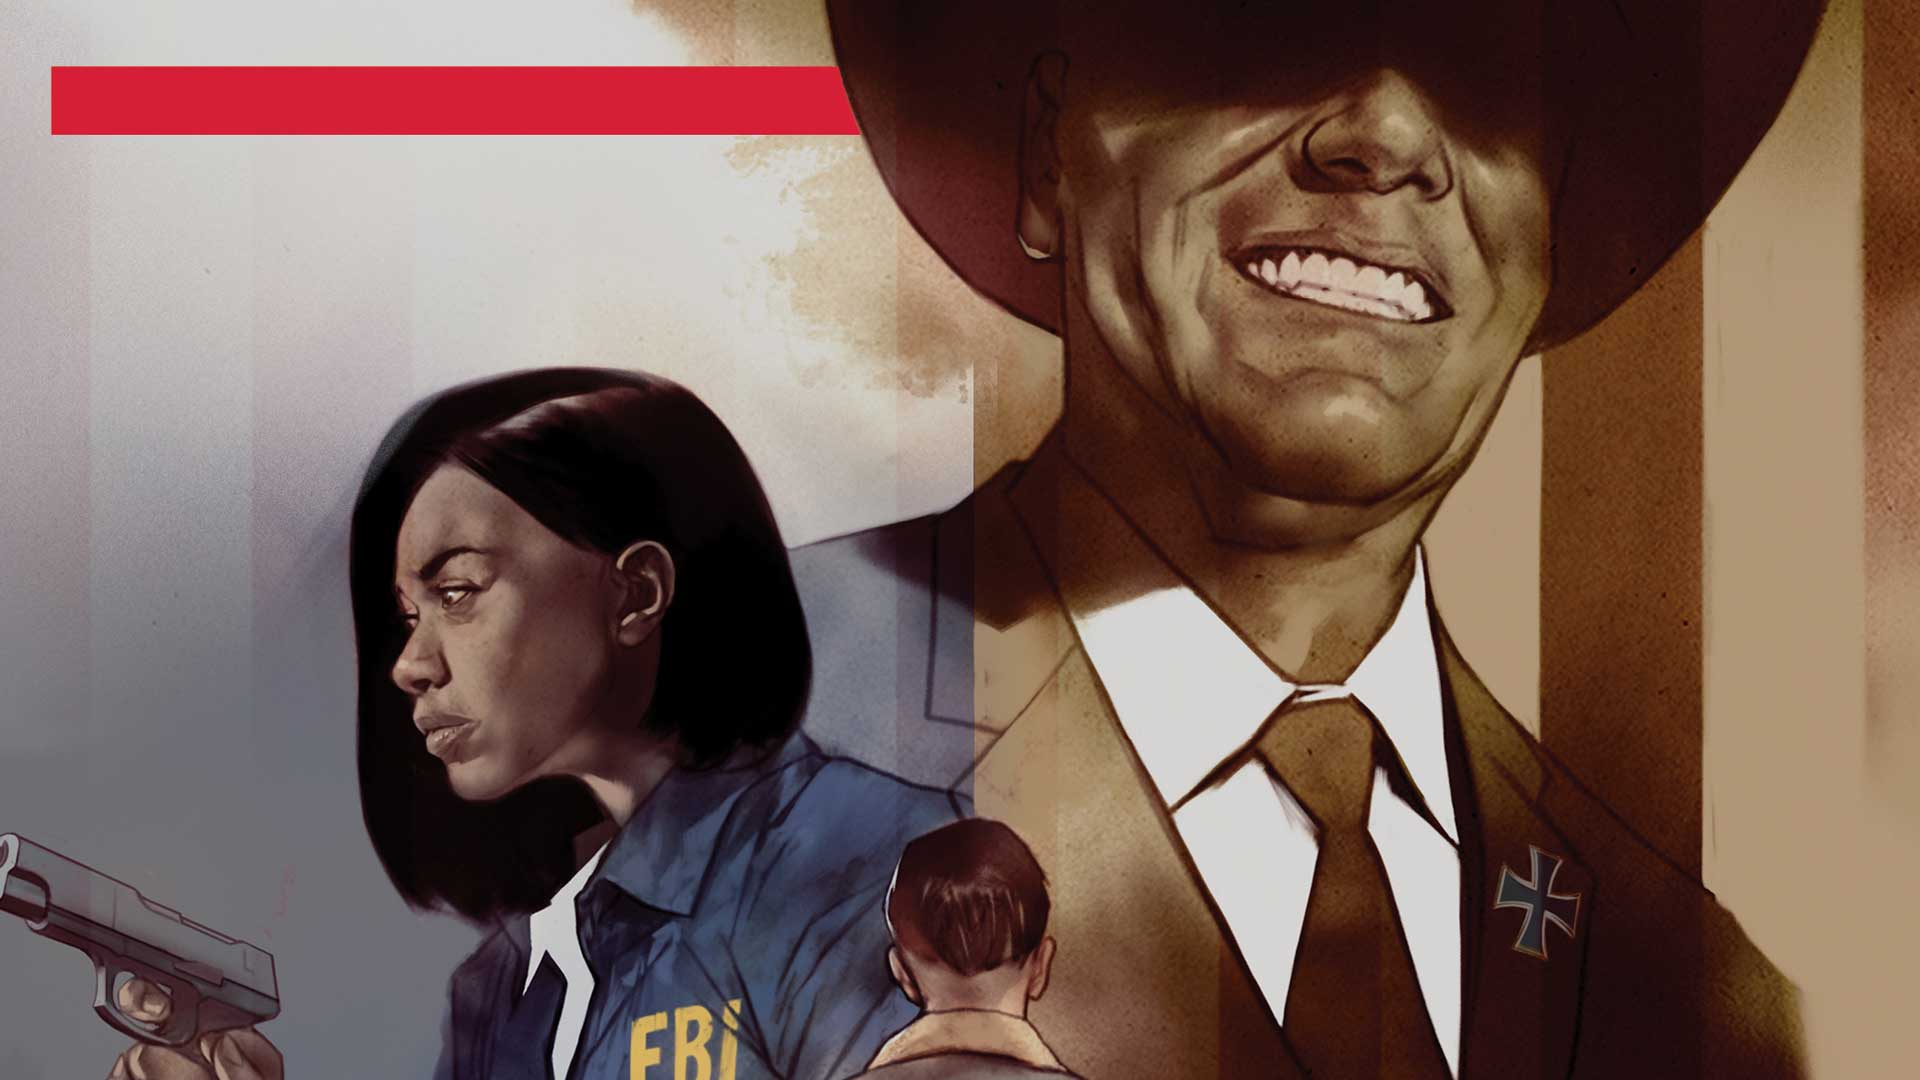 American Carnage # 1 Review: A great comic that deals in harsh realities